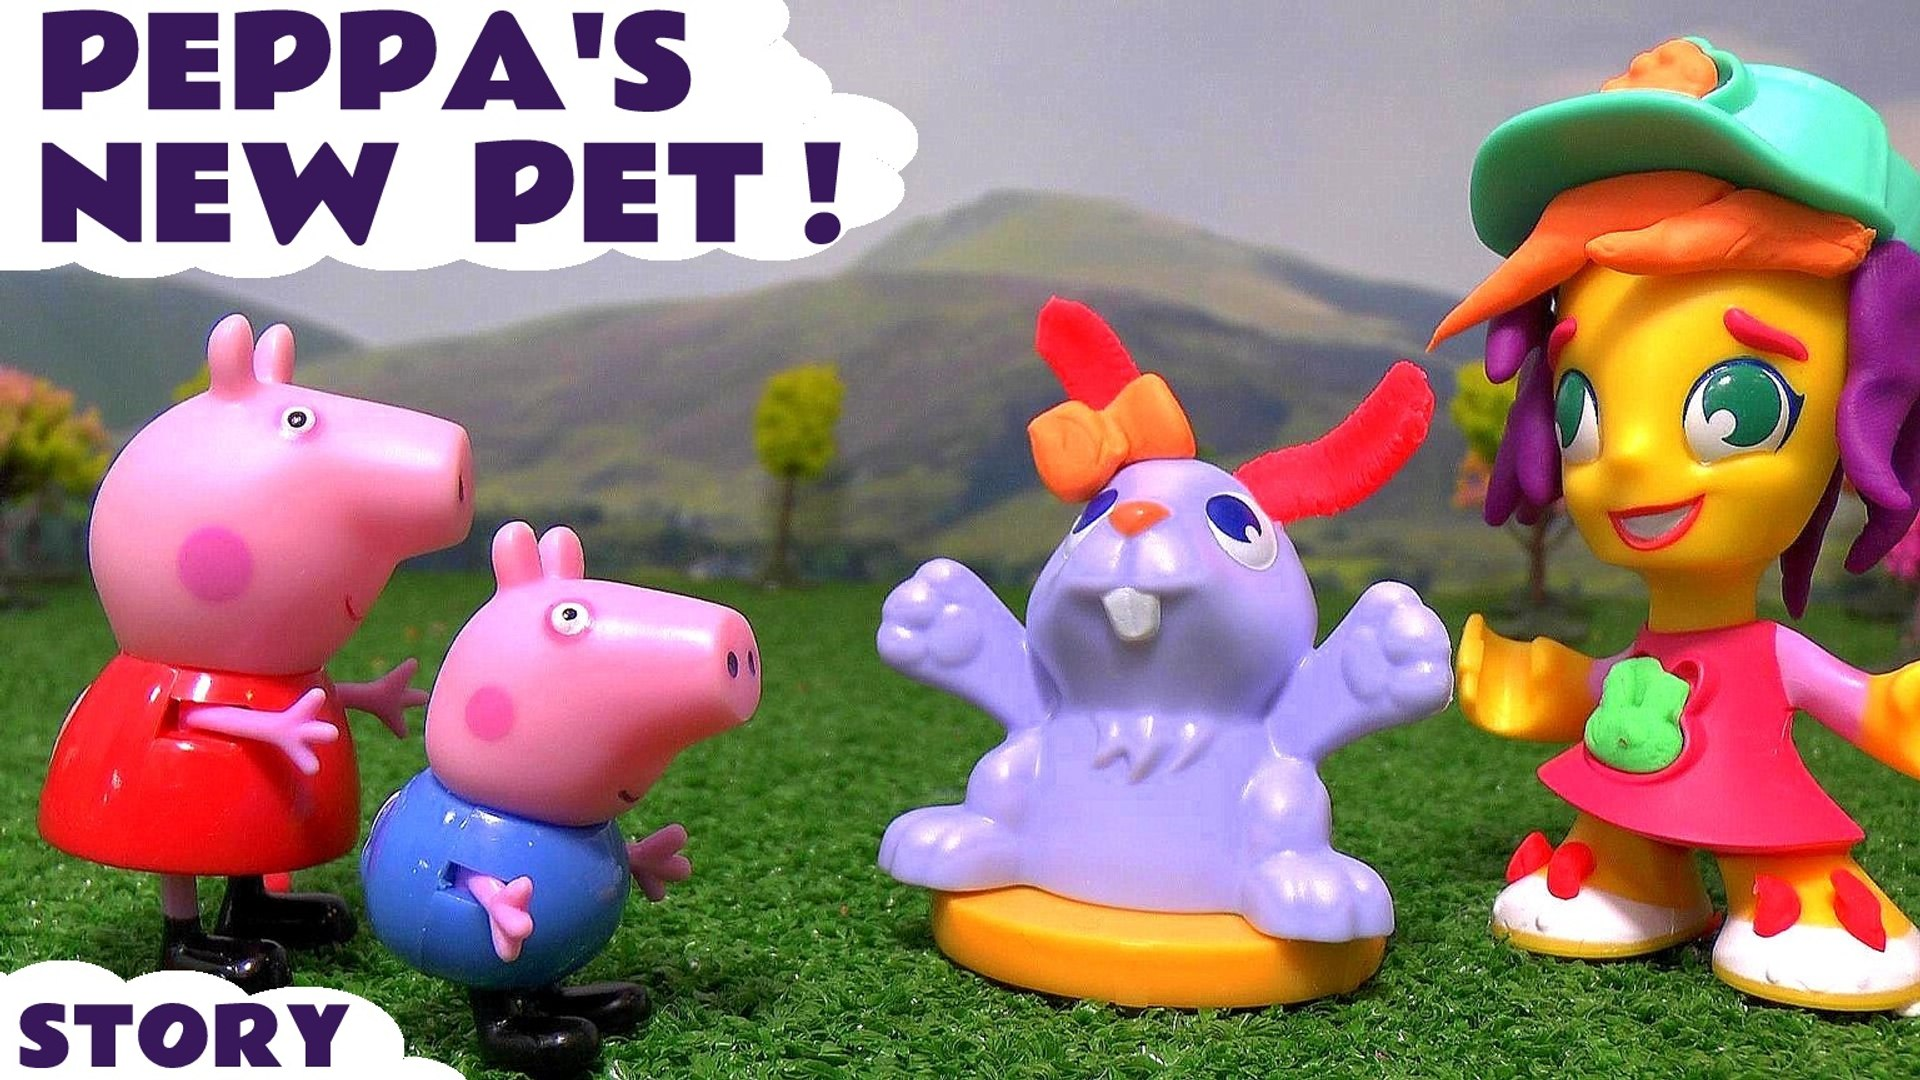 PEPPA'S NEW PET --- Peppa Pig and george want a pet but Daddy pig doesn't allow it, then t